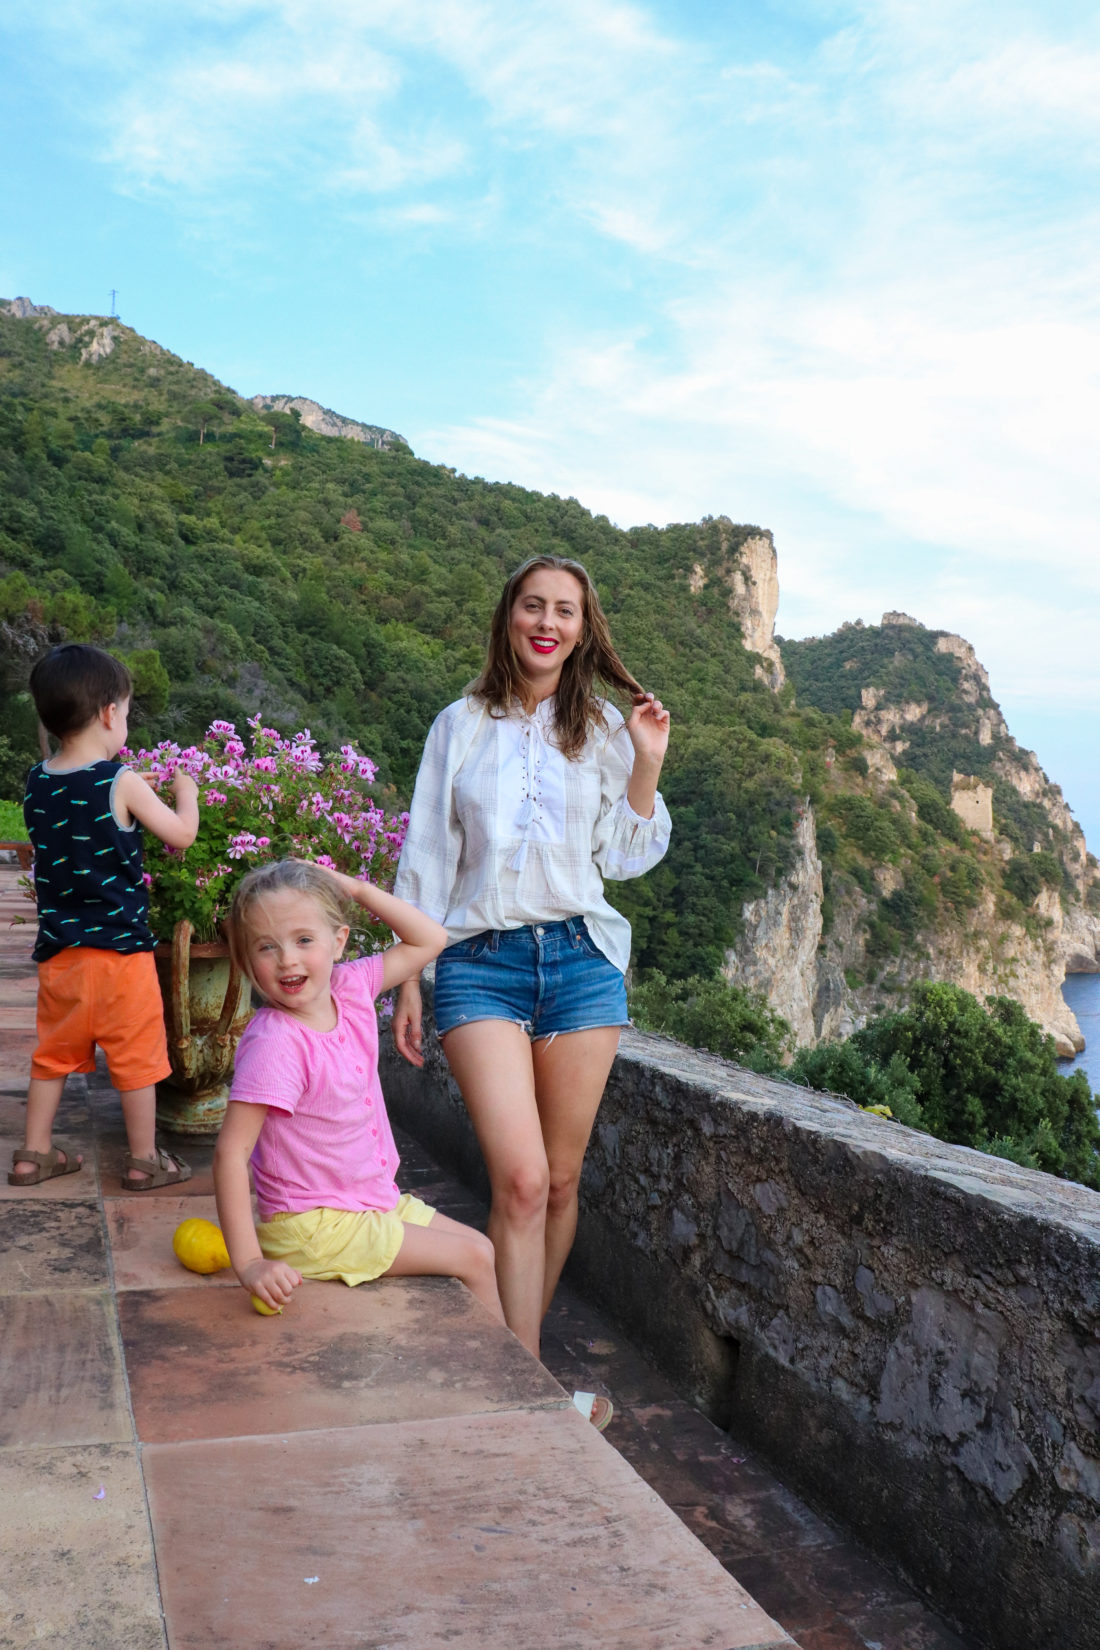 Eva Amurri Martino on the Amalfi coast with her children Marlowe and Major